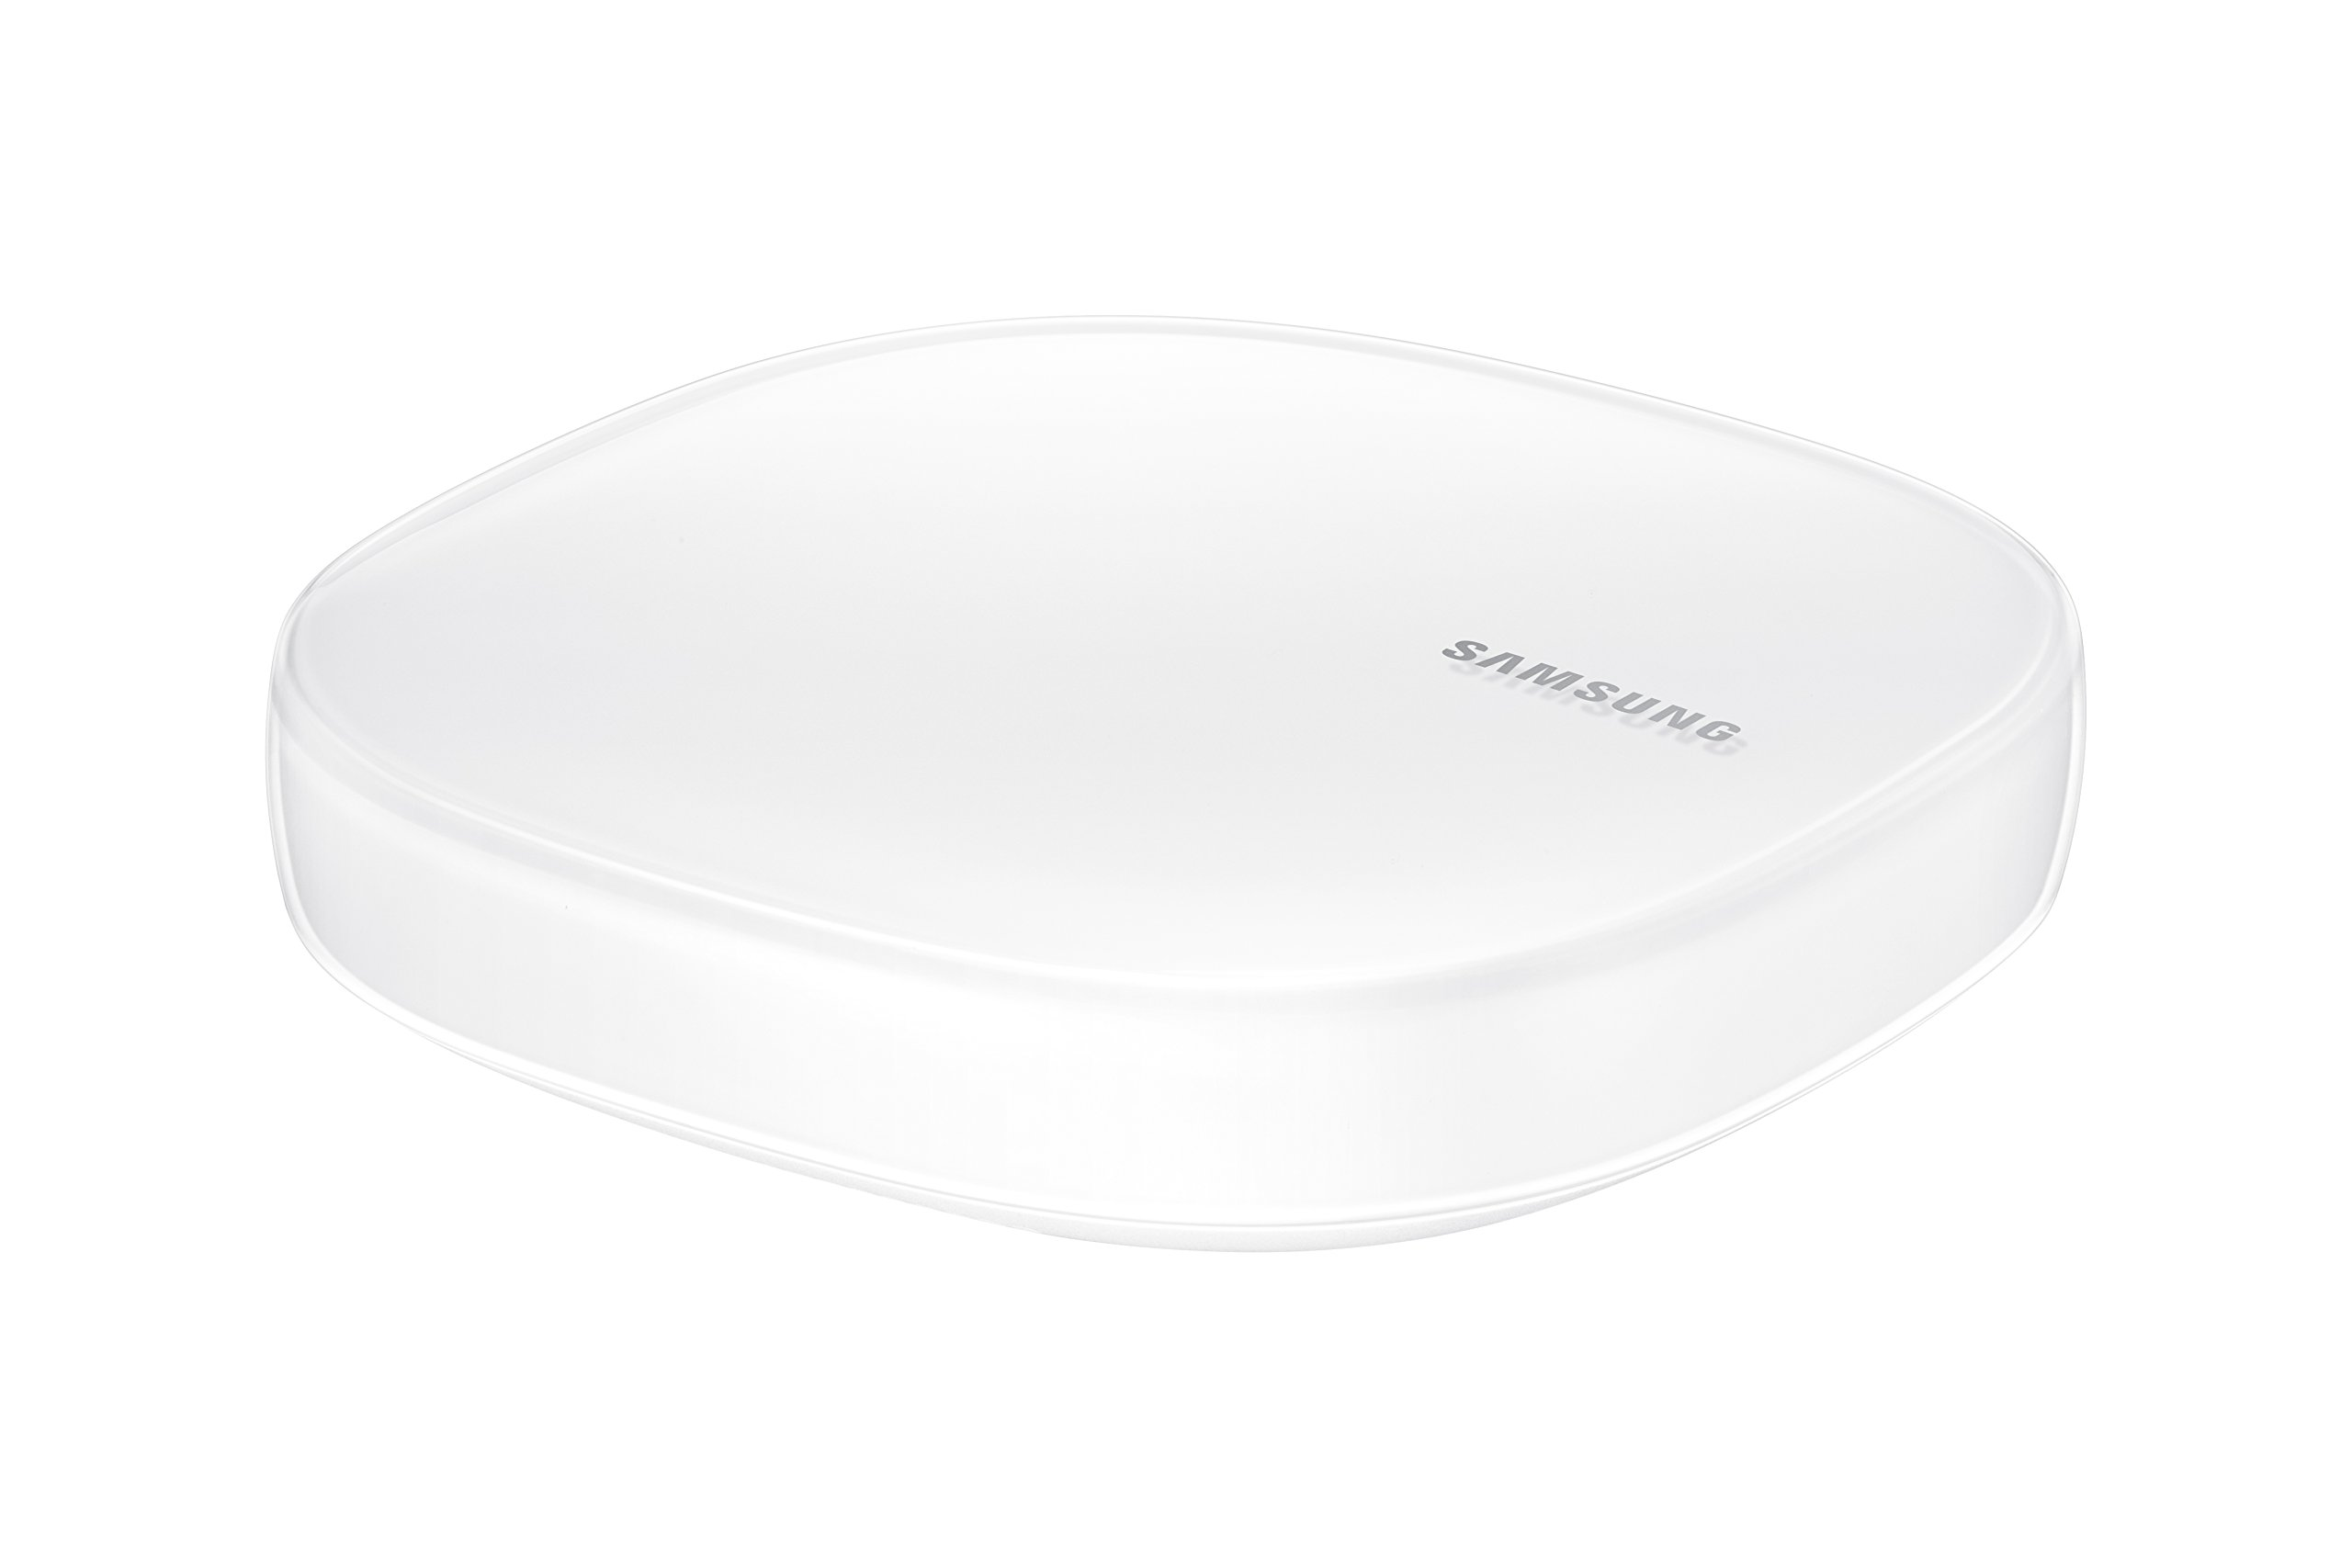 Samsung Connect Home Pro AC2600 Smart Wi-Fi System (Single), Works as a SmartThings Hub